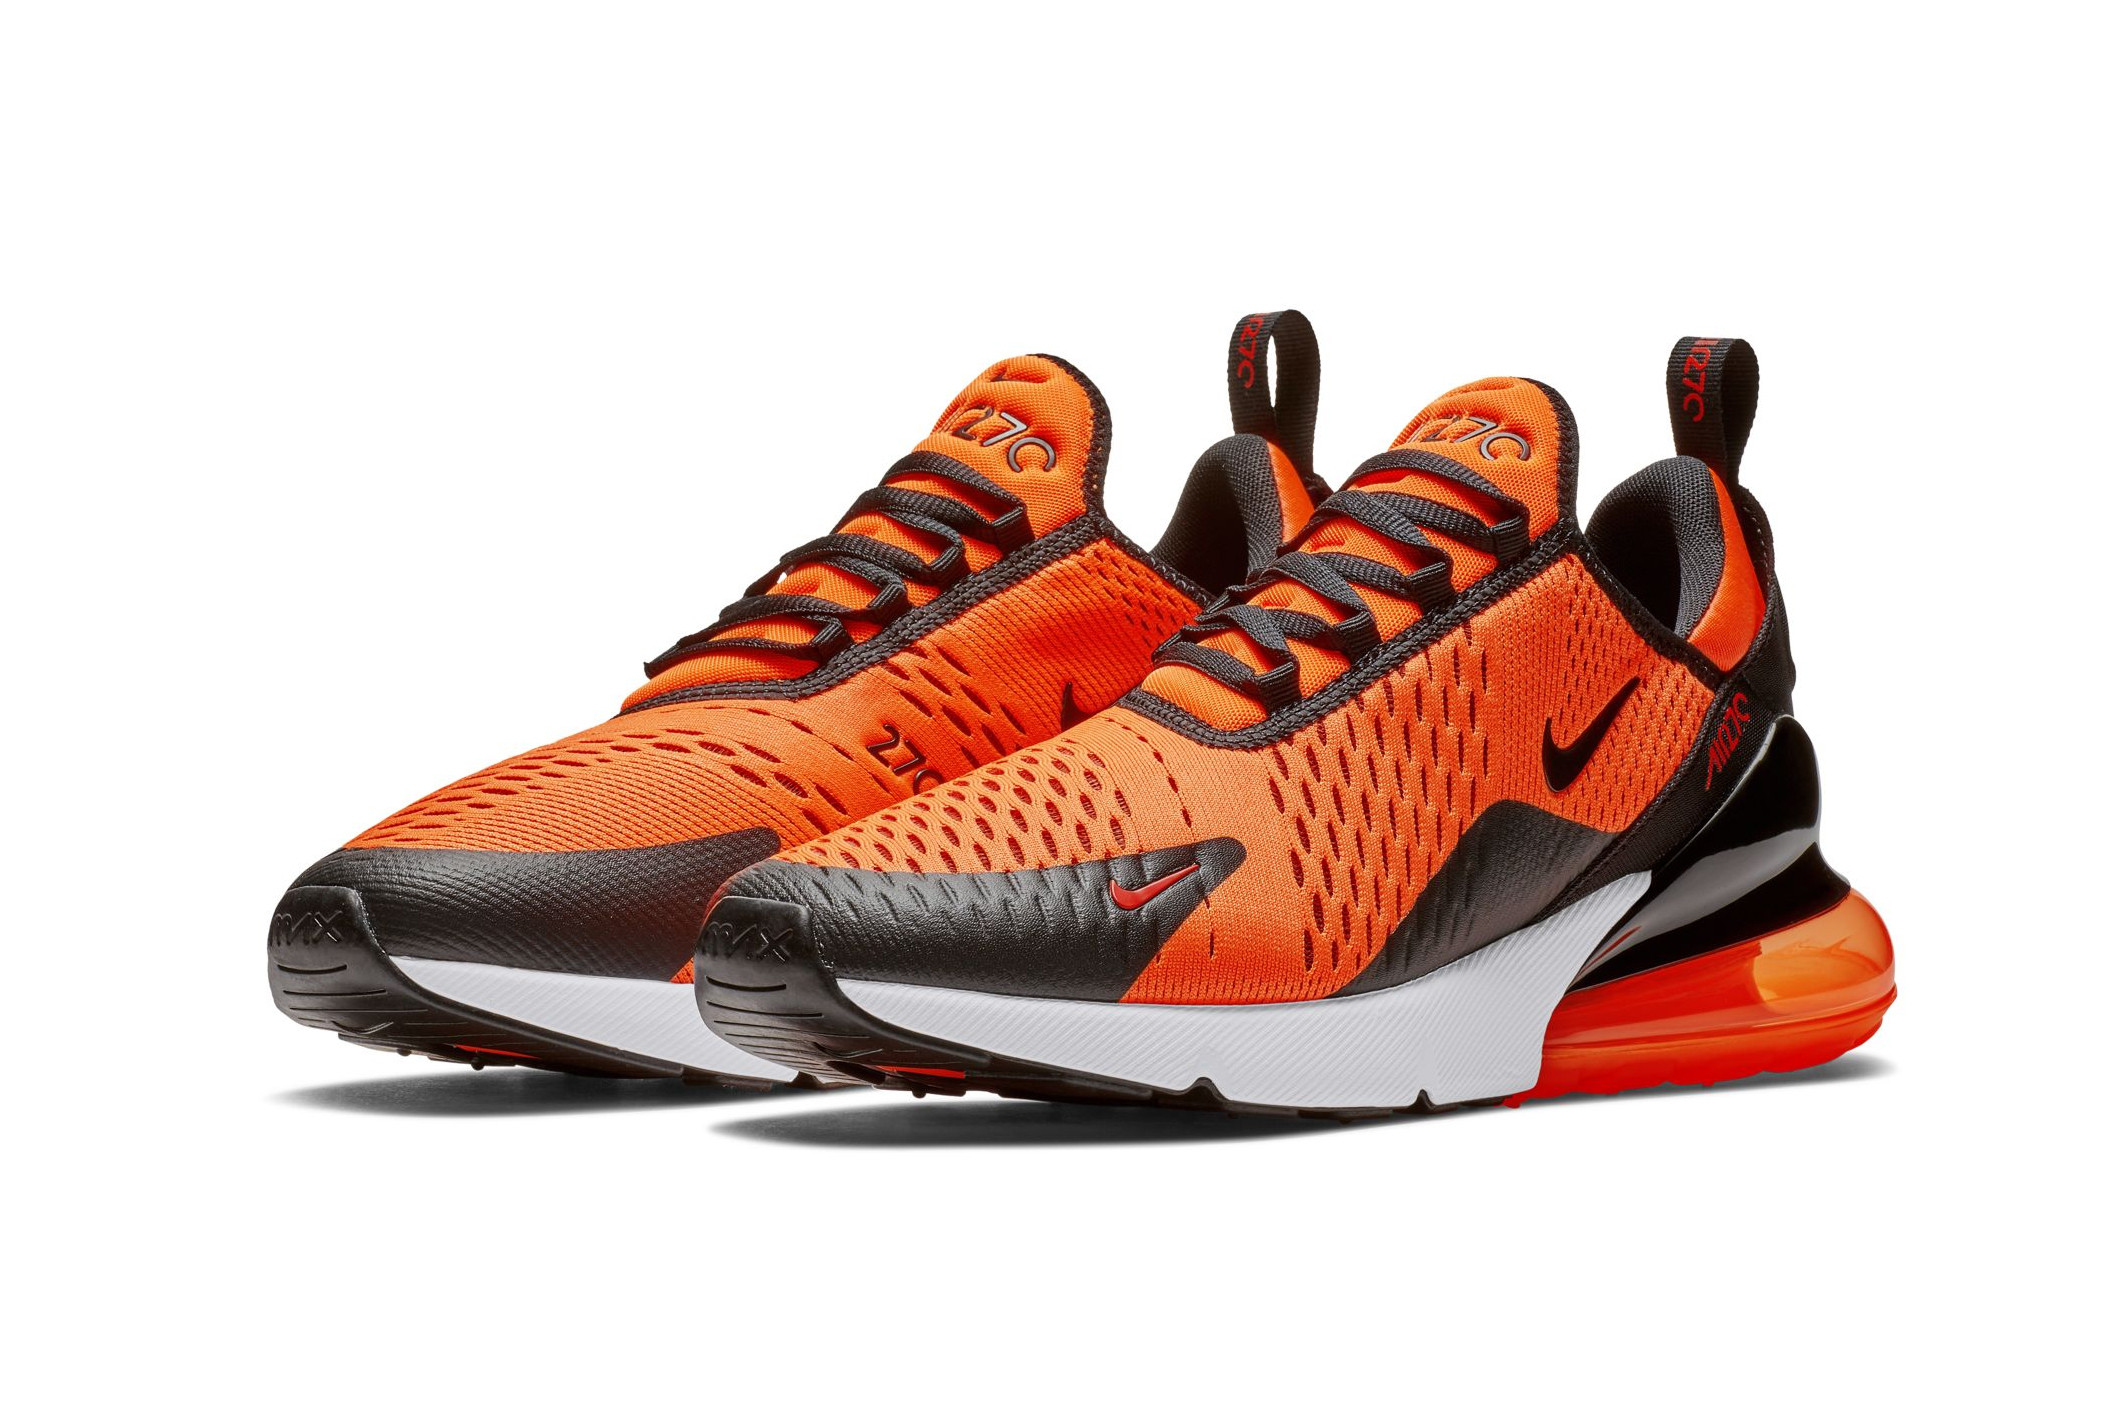 https---hypebeast.com-image-2018-08-nike-gives-the-air-max-270-a-total-orange-rework-02